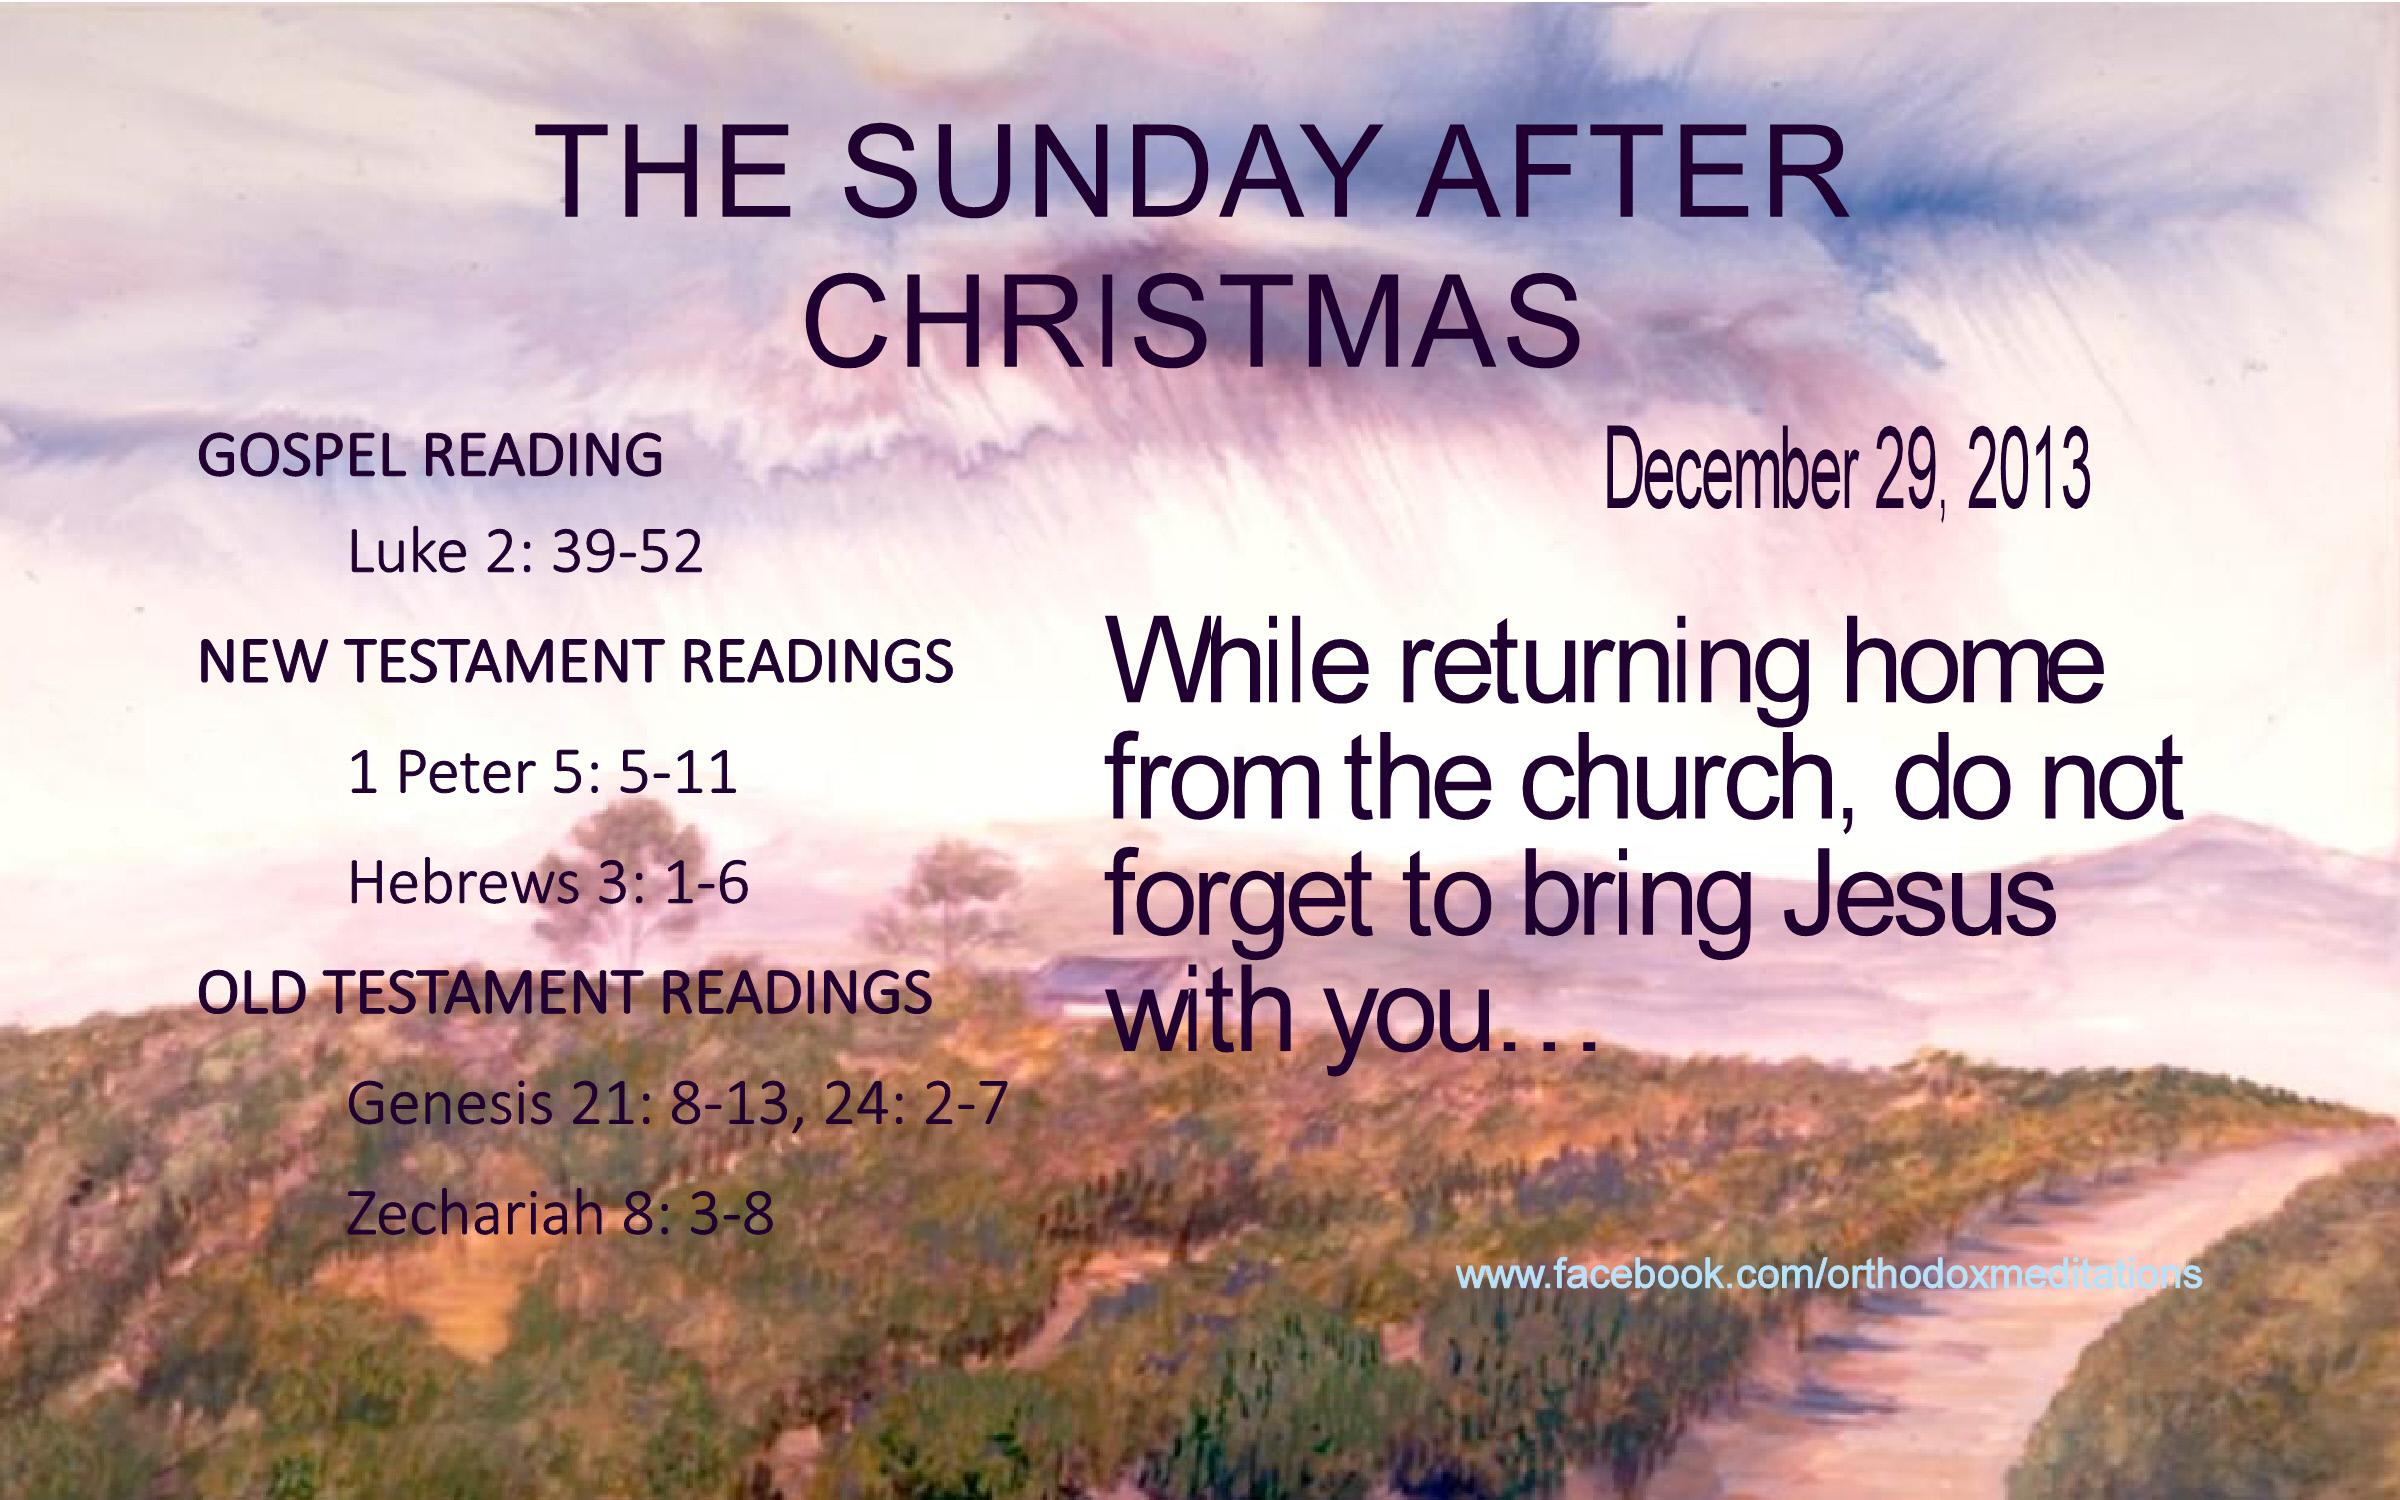 THE SUNDAY AFTER CHRISTMAS.